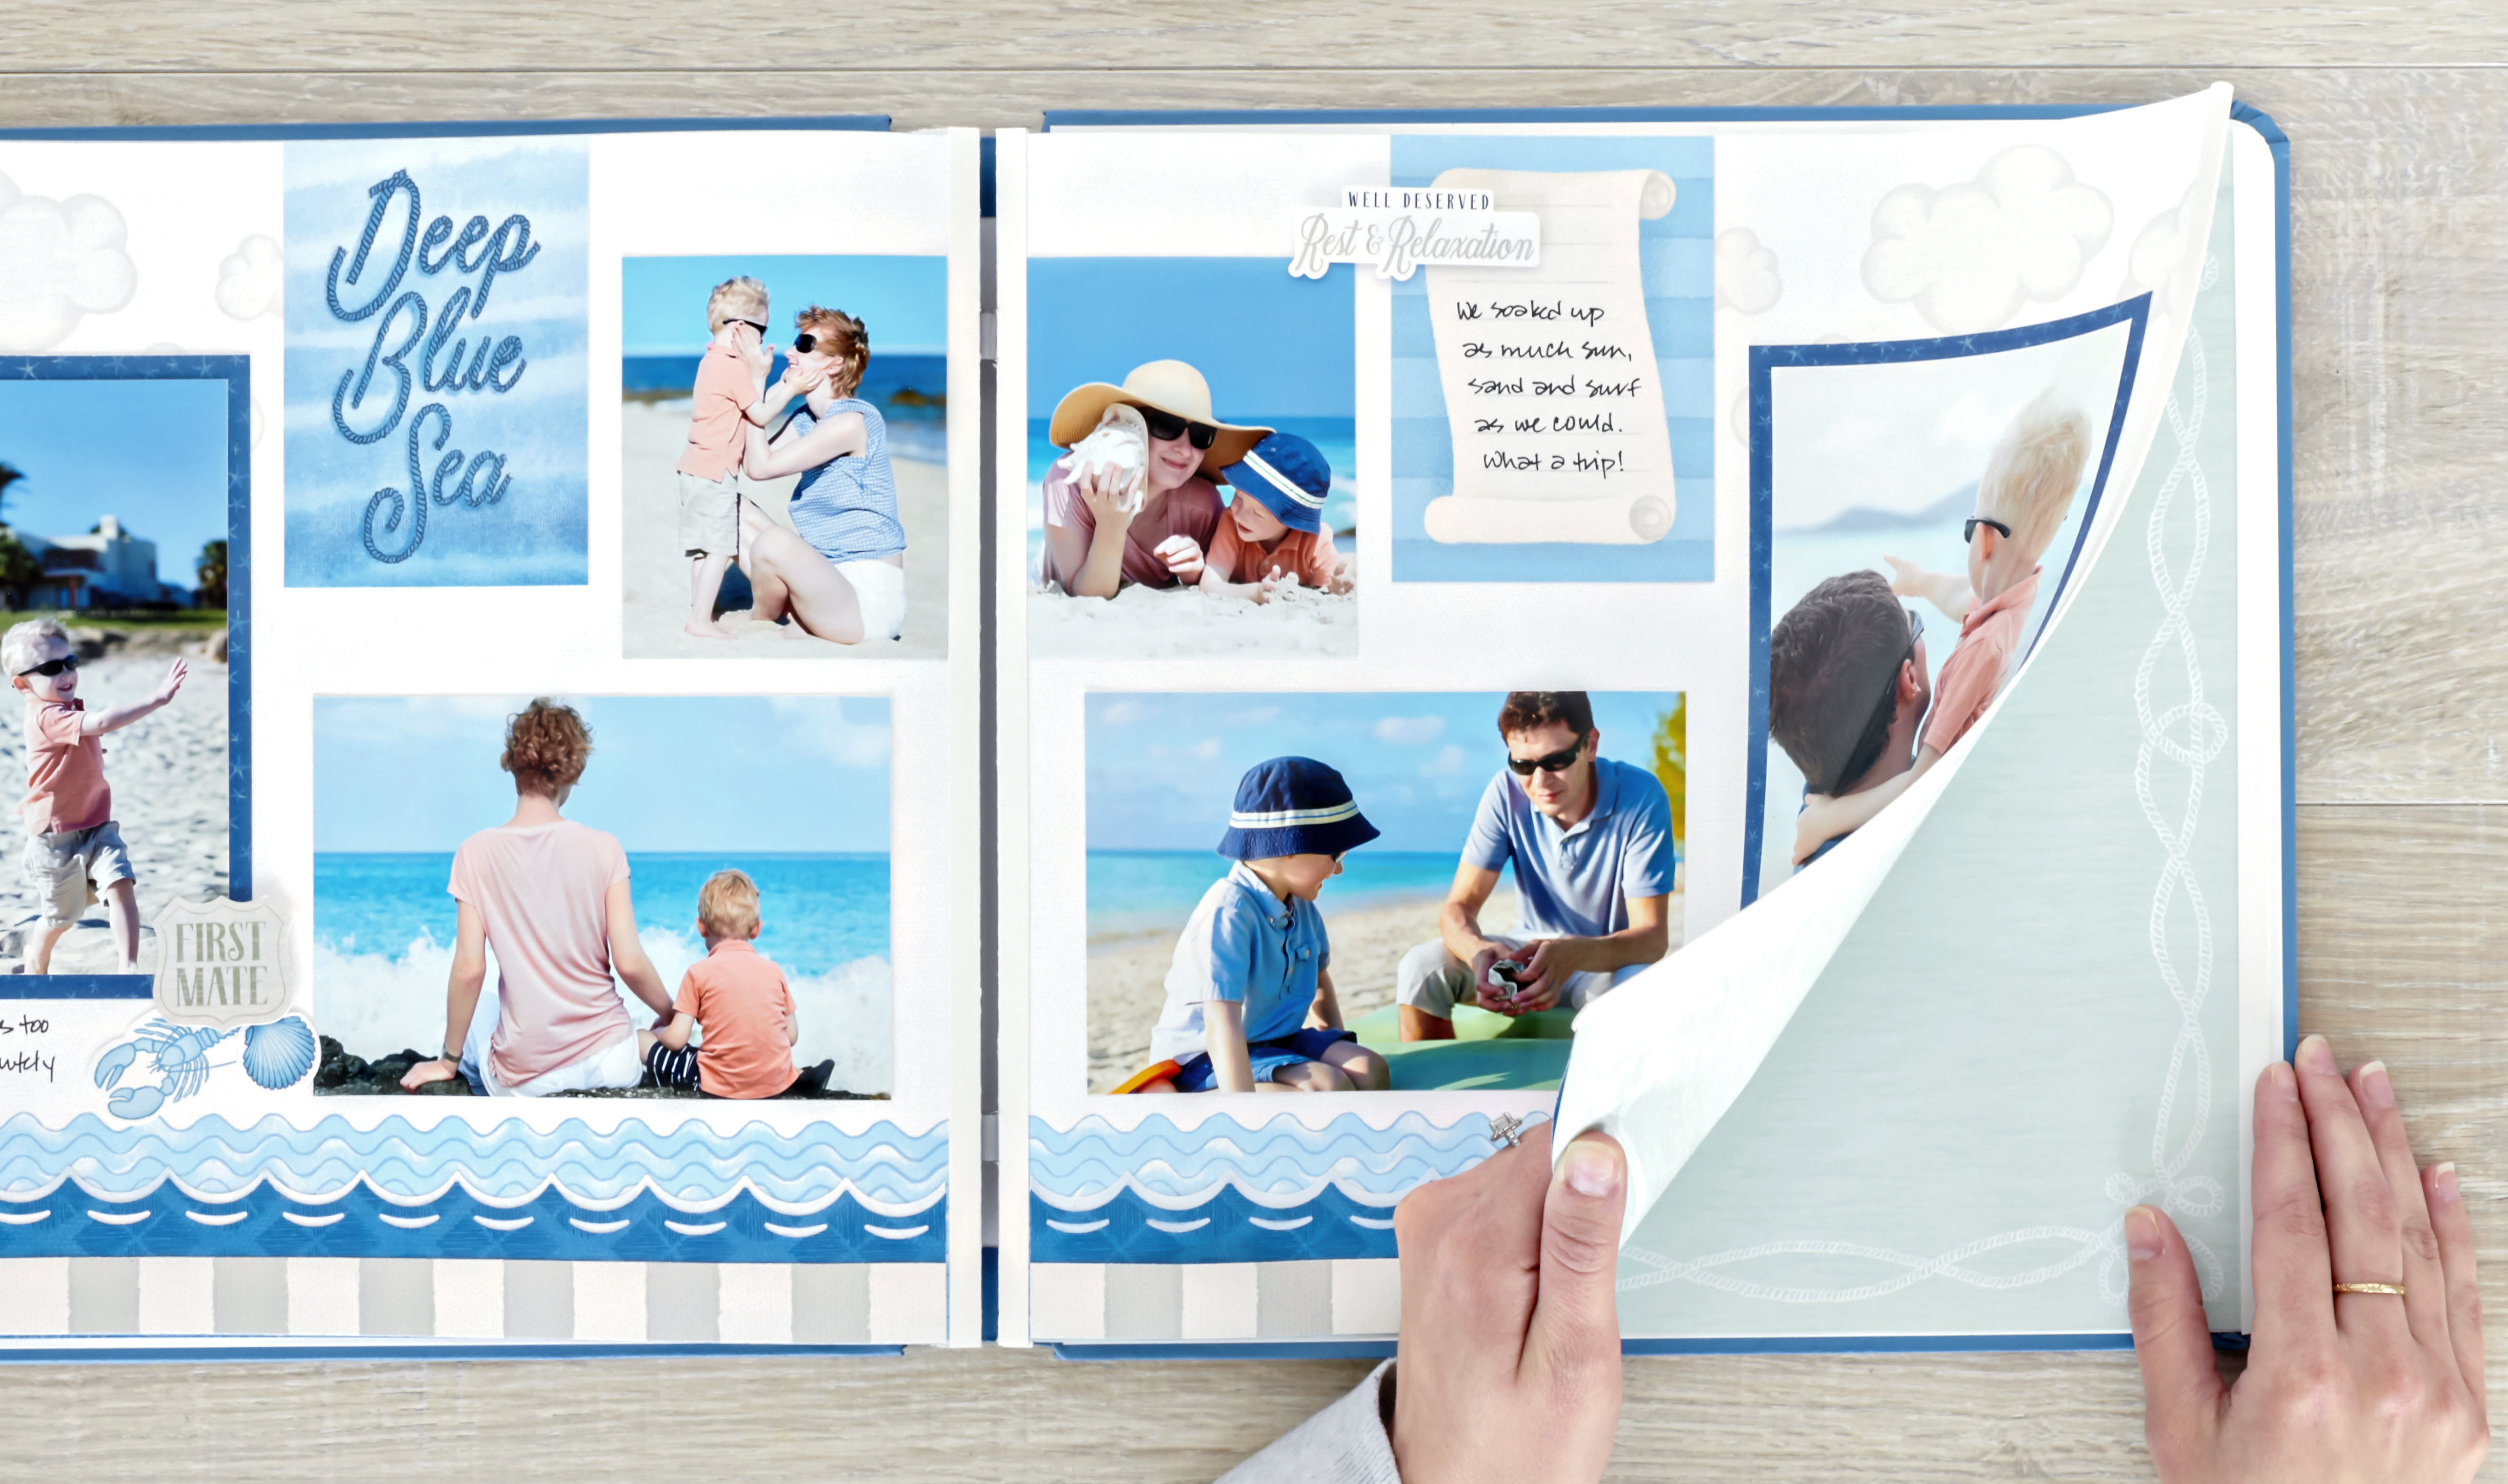 Deep-Blue-Sea-Fast2Fab-Layout-Creative-Memories.jpg